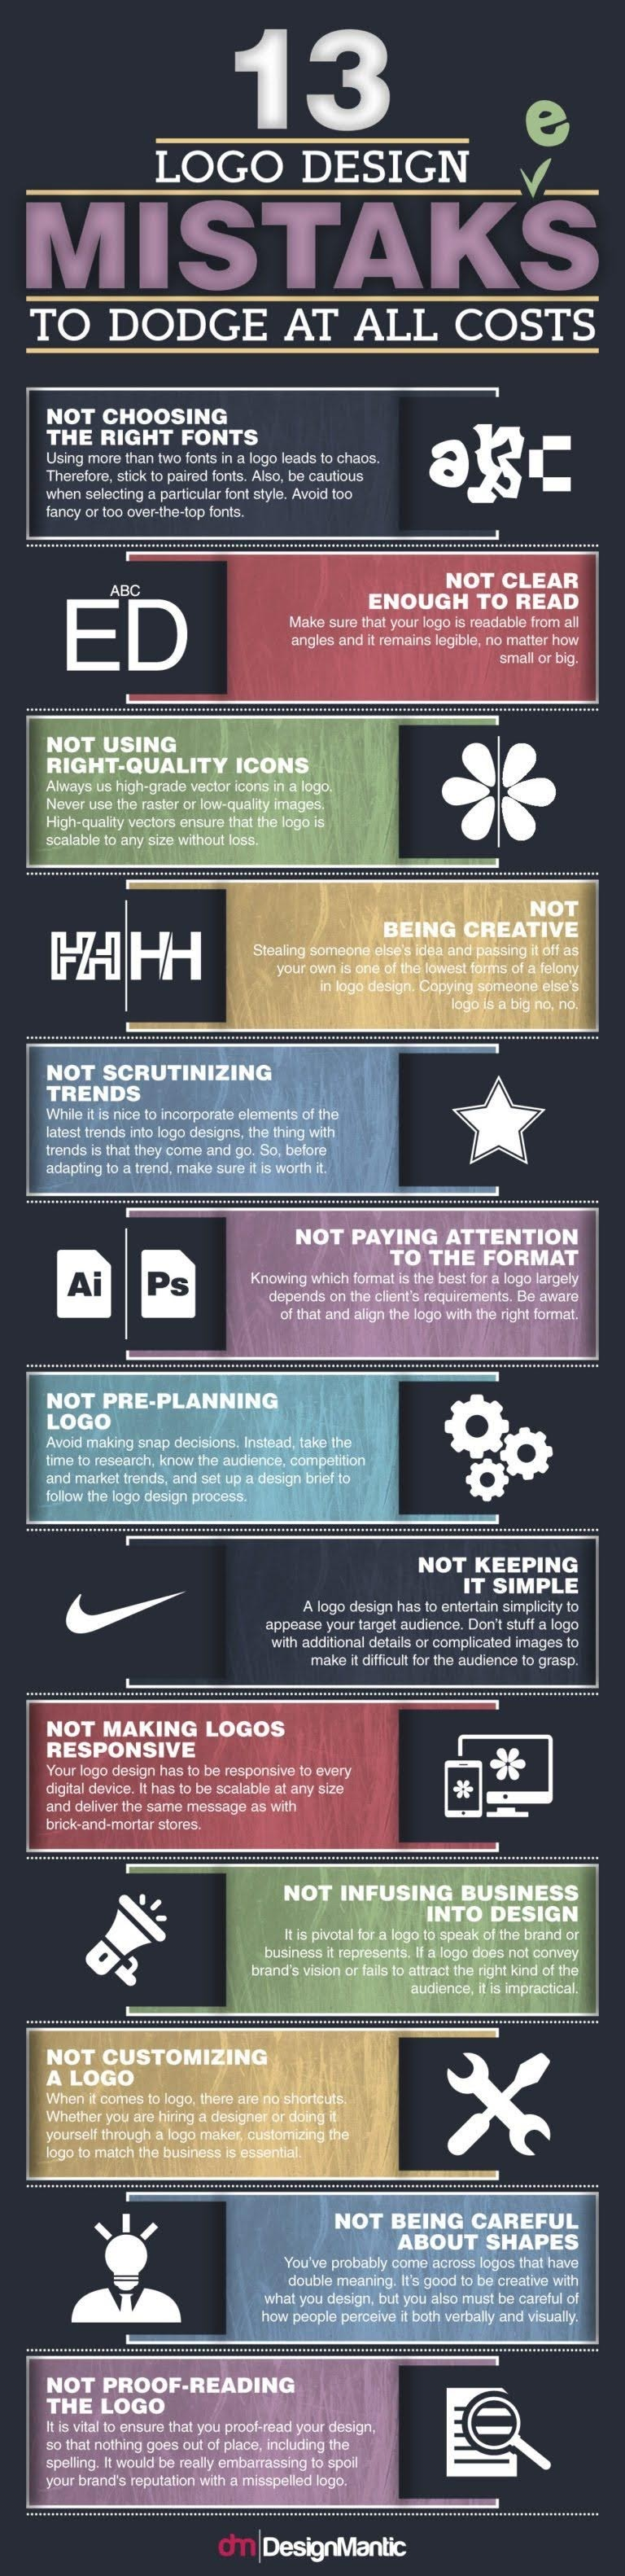 13 Logo Design Mistakes That Could Affect Your Reputation #infographic